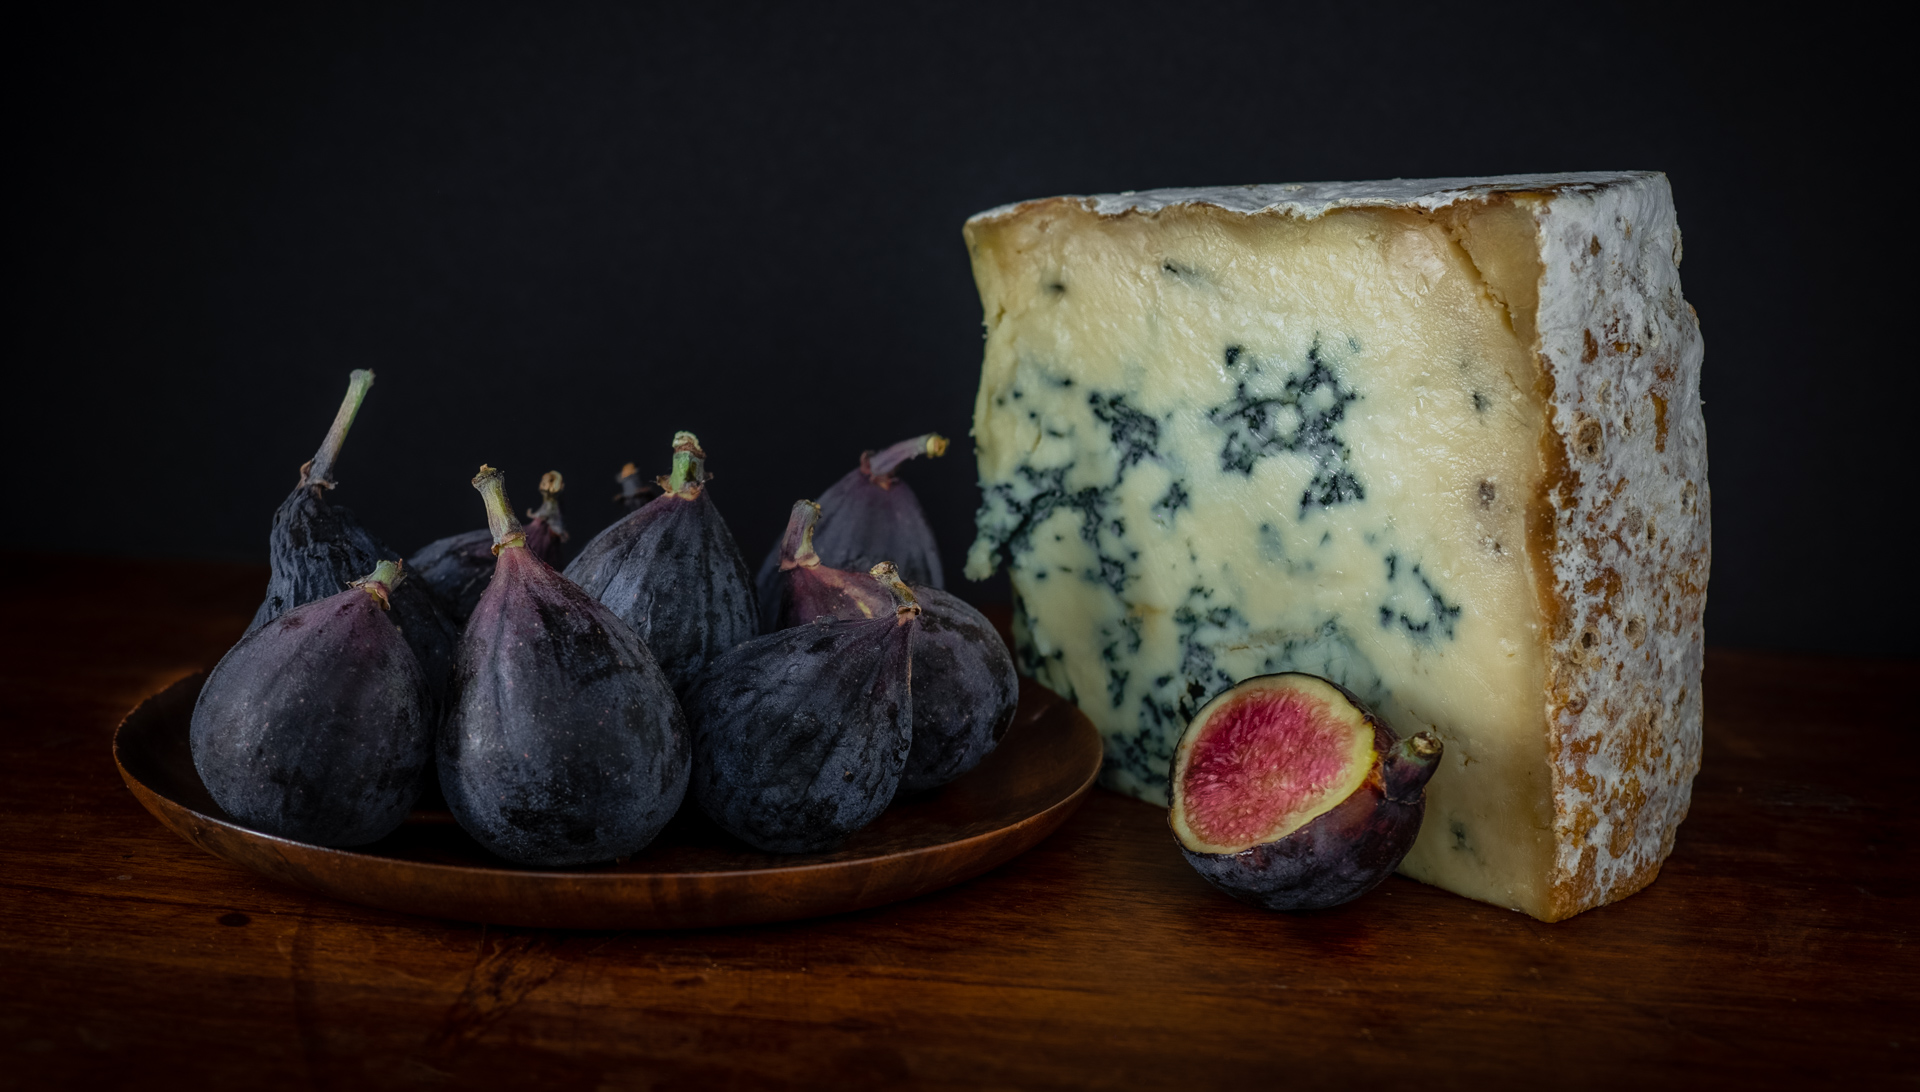 Still Life with Figs and Cheese - Still Life Gallery